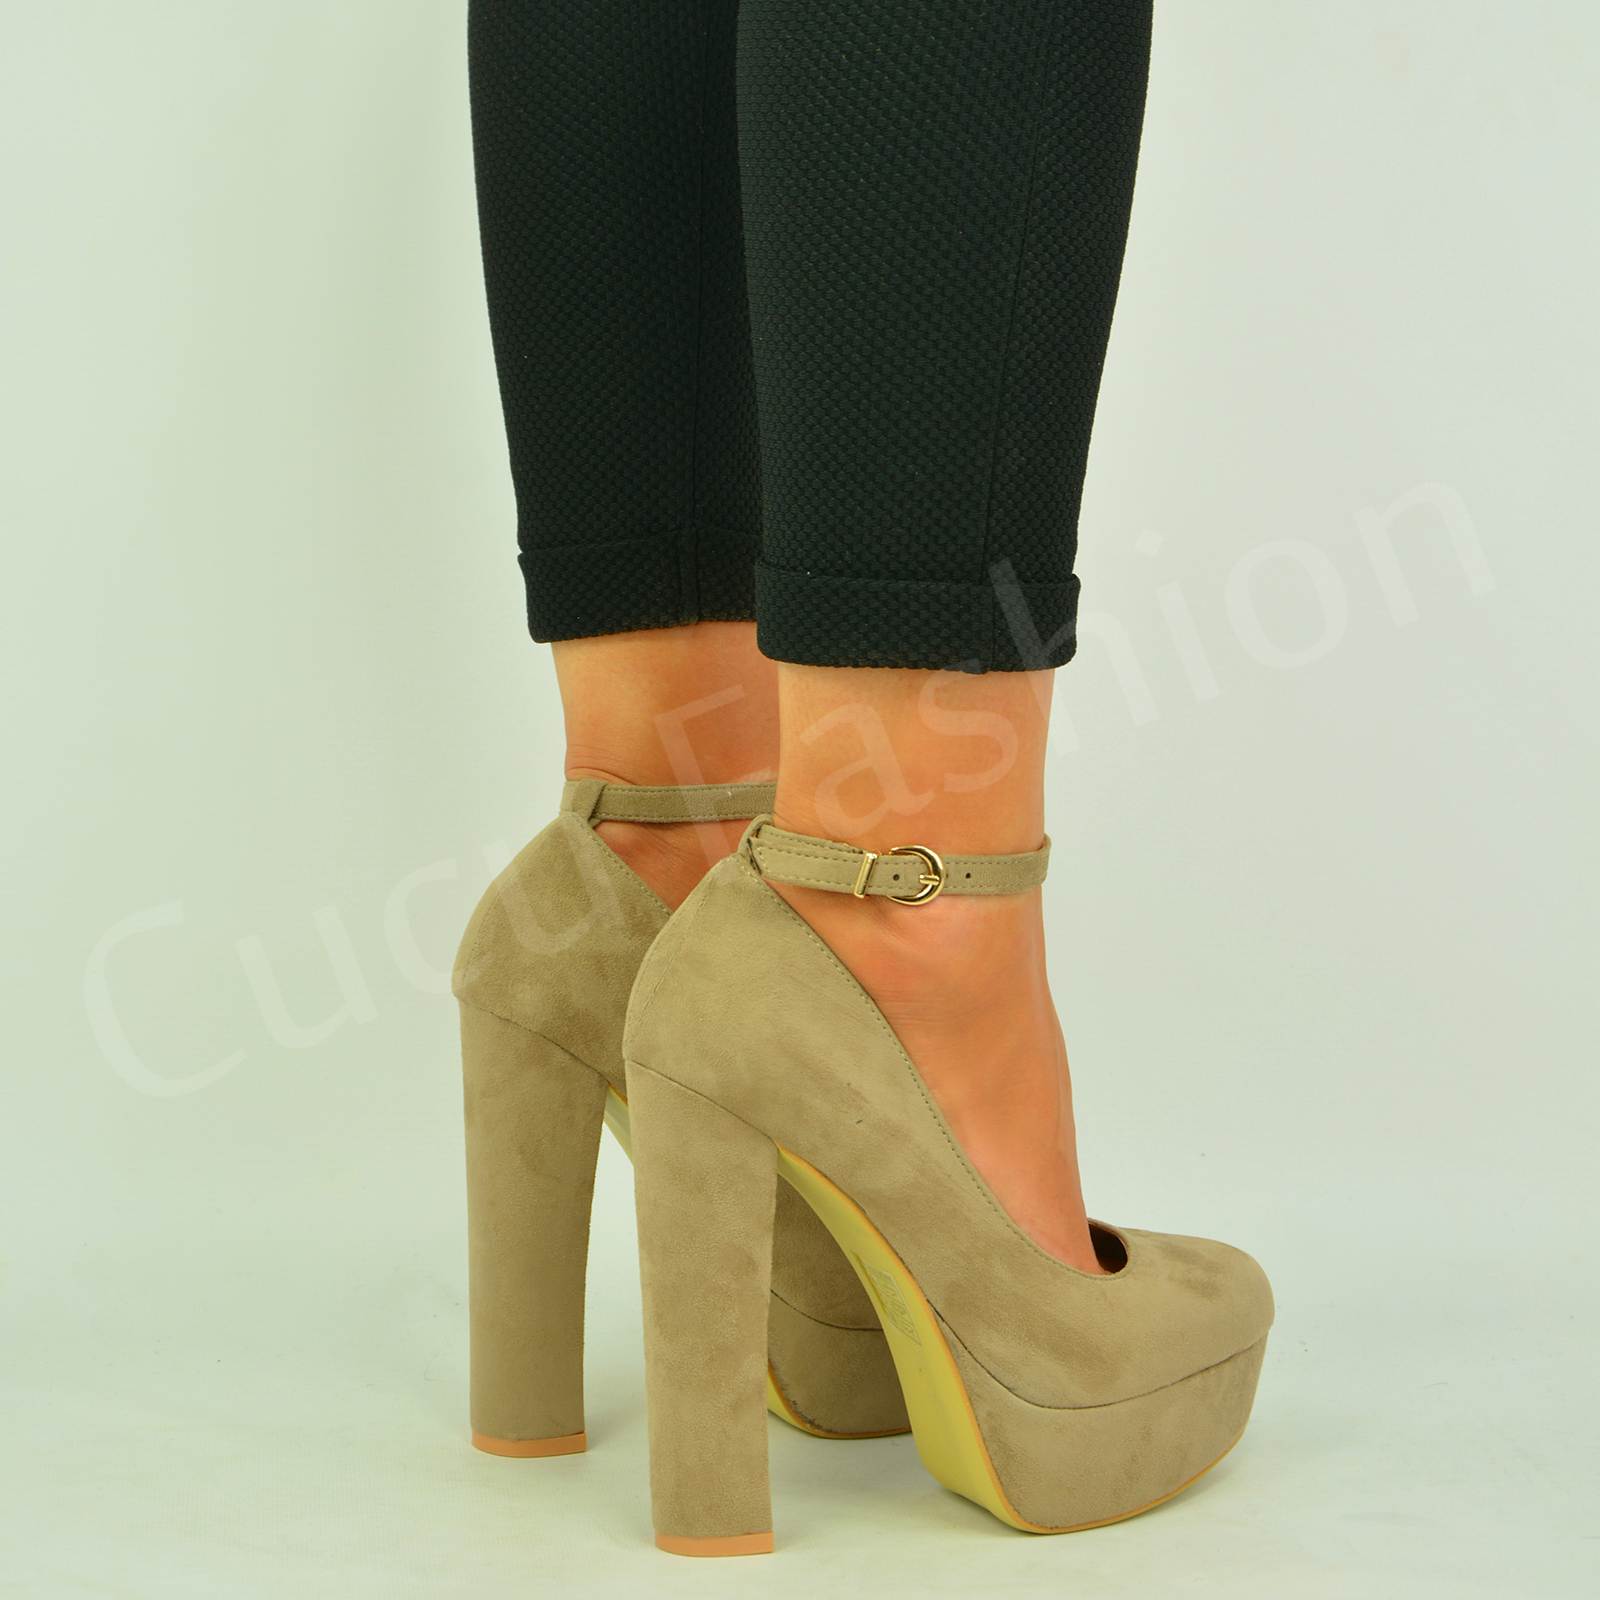 New-Womens-Ladies-Block-High-Heel-Pumps-Ankle-Strap-Sandals-Shoes-Size-Uk-3-8